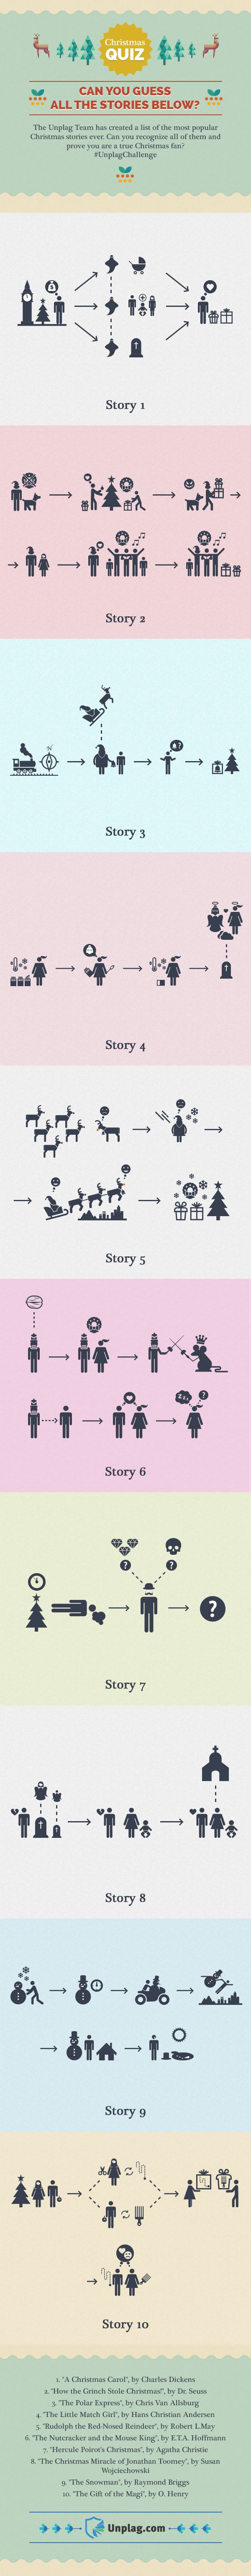 Christmas Story Quiz by Unplag #infographic